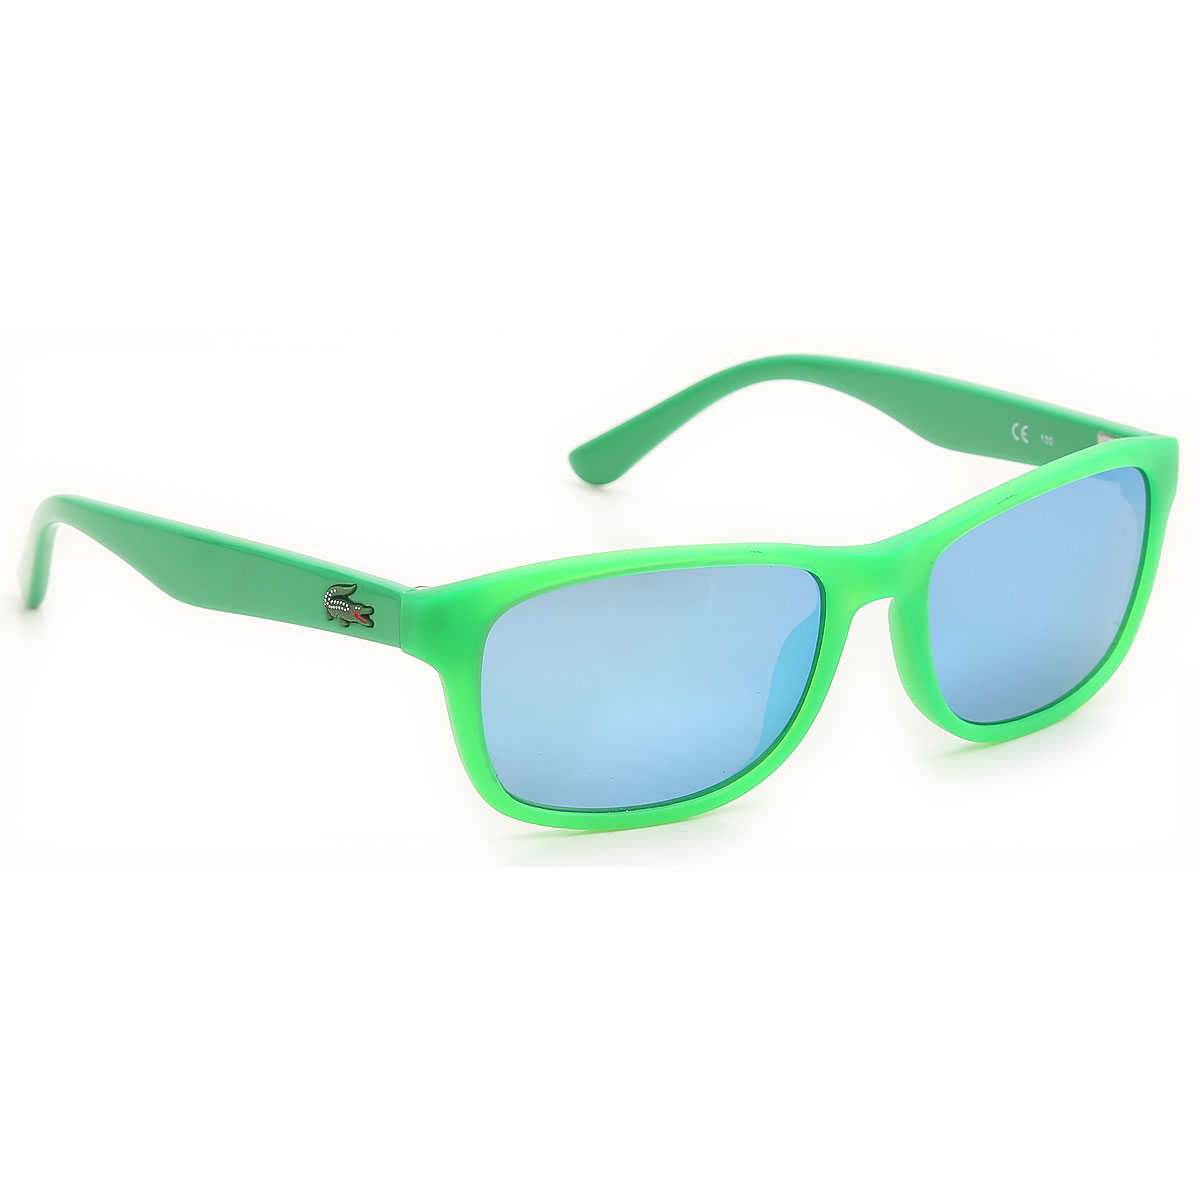 Lacoste Kids Sunglasses for Boys Fluo Matt Green USA - GOOFASH